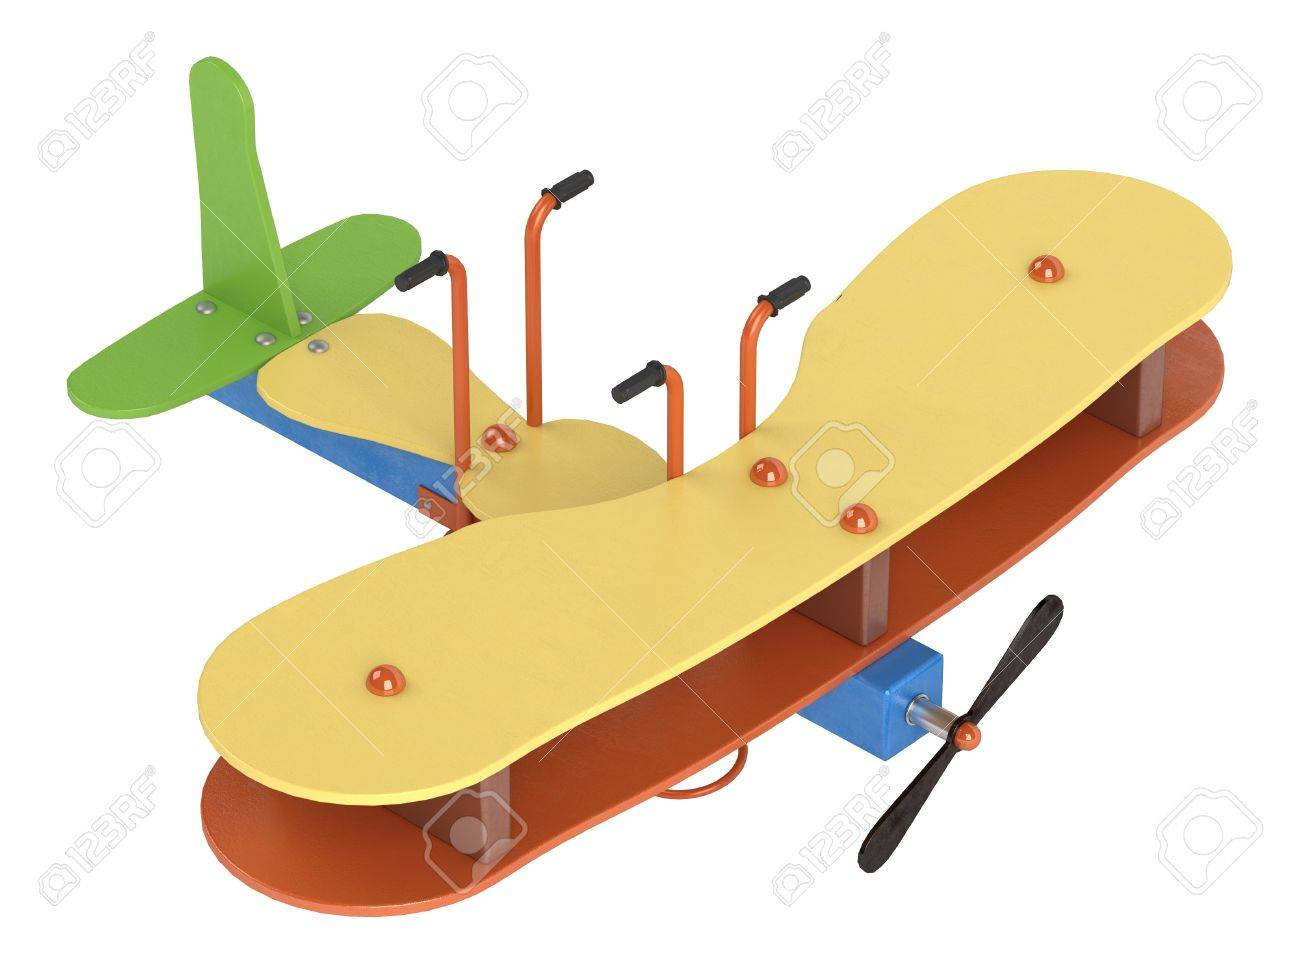 1300x975 Bouncy Aeroplane Springs For Preschool Children To Ride